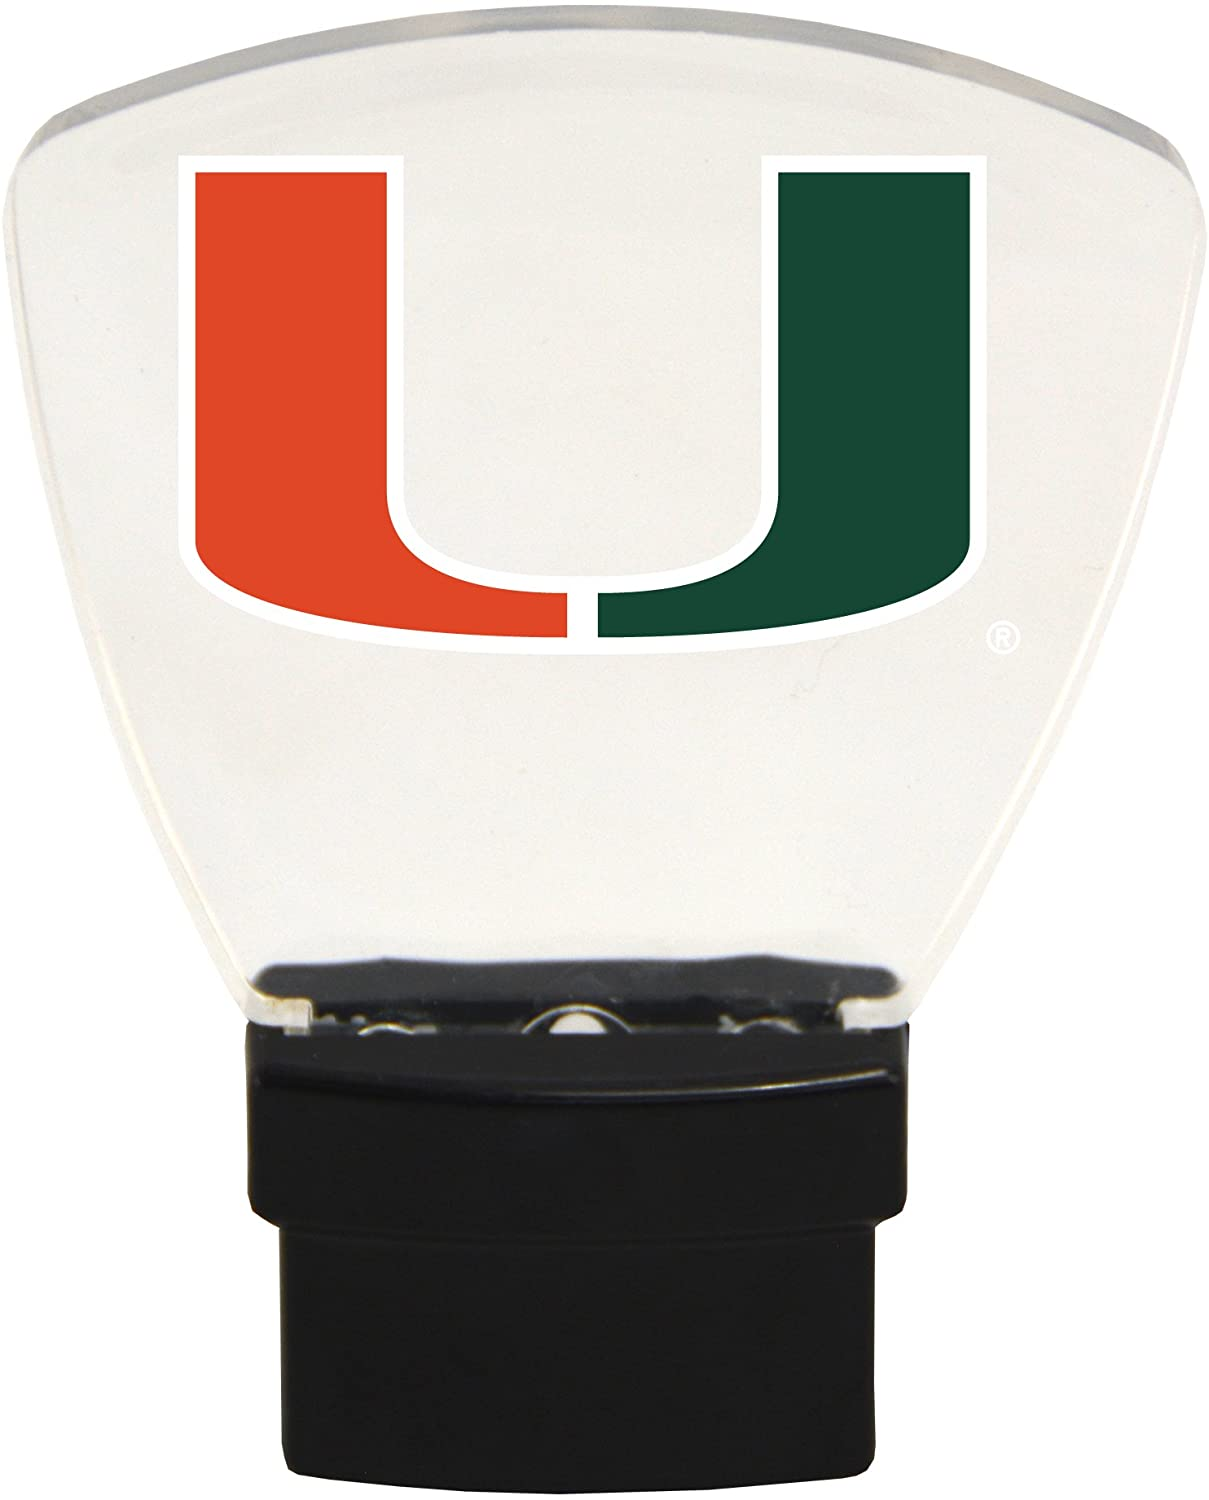 Authentic Street Signs NCAA Officially Licensed-LED Night Light-Super Energy Efficient-Prime Power Saving 0.5 watt, Plug in-Great Sports Fan Gift for Adults-Babies-Kids Room (Miami Hurricanes)